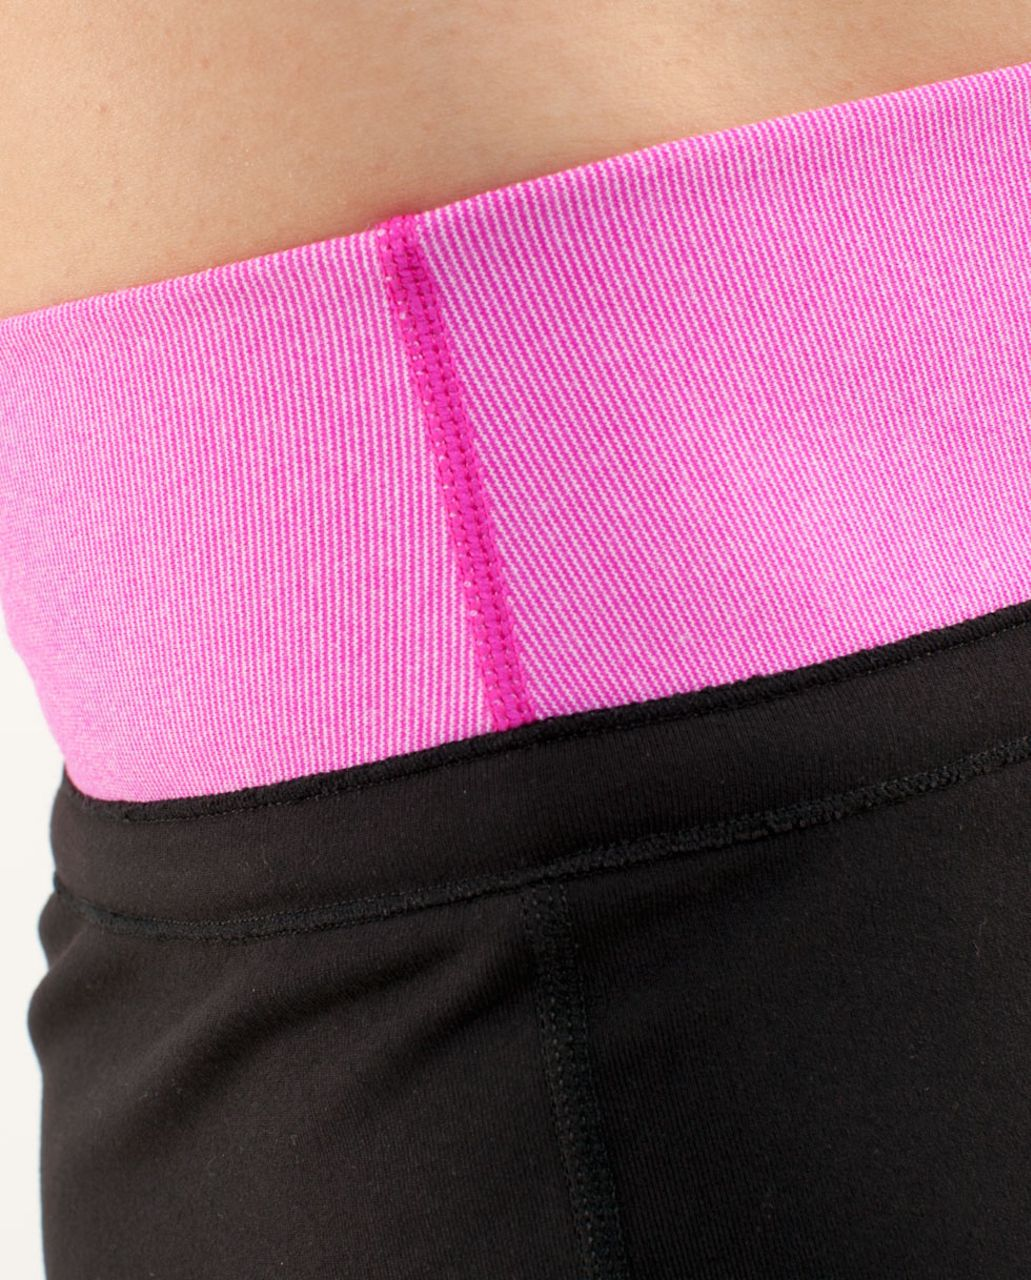 Lululemon Knock Out Short - Black /  Paris Pink White Microstripe